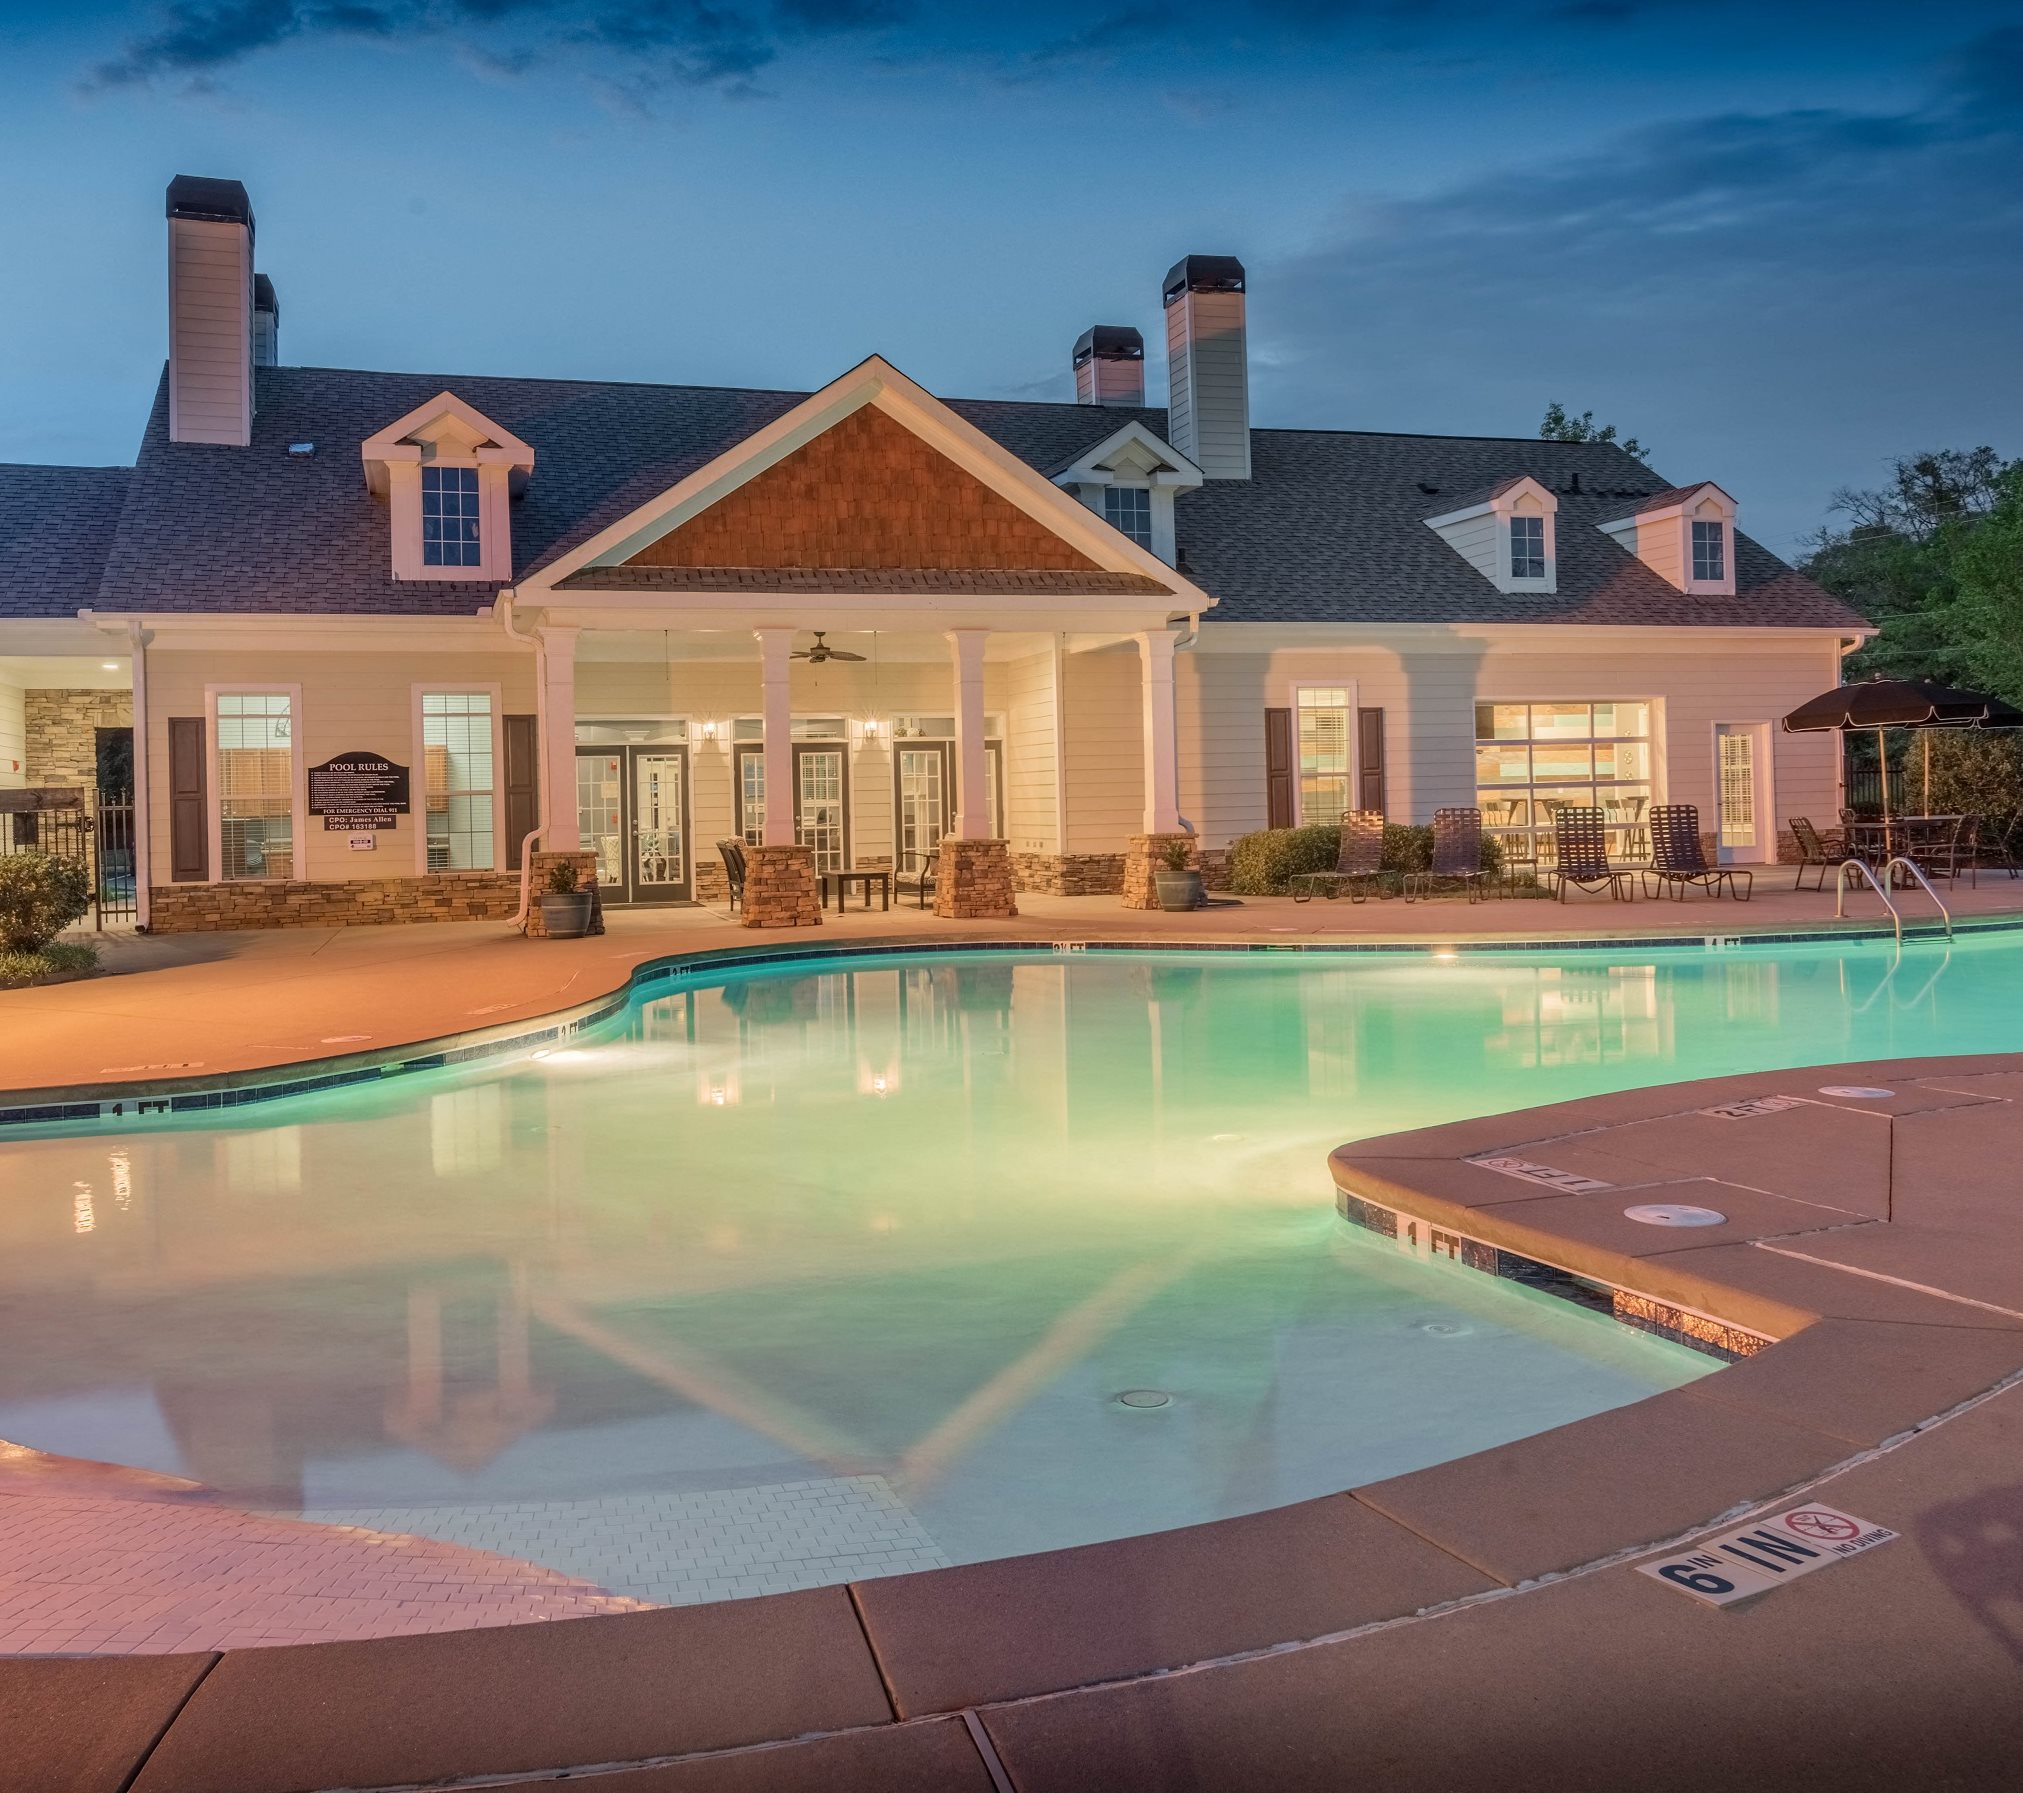 Meyer Park Apartments: Apartments In Anderson, SC